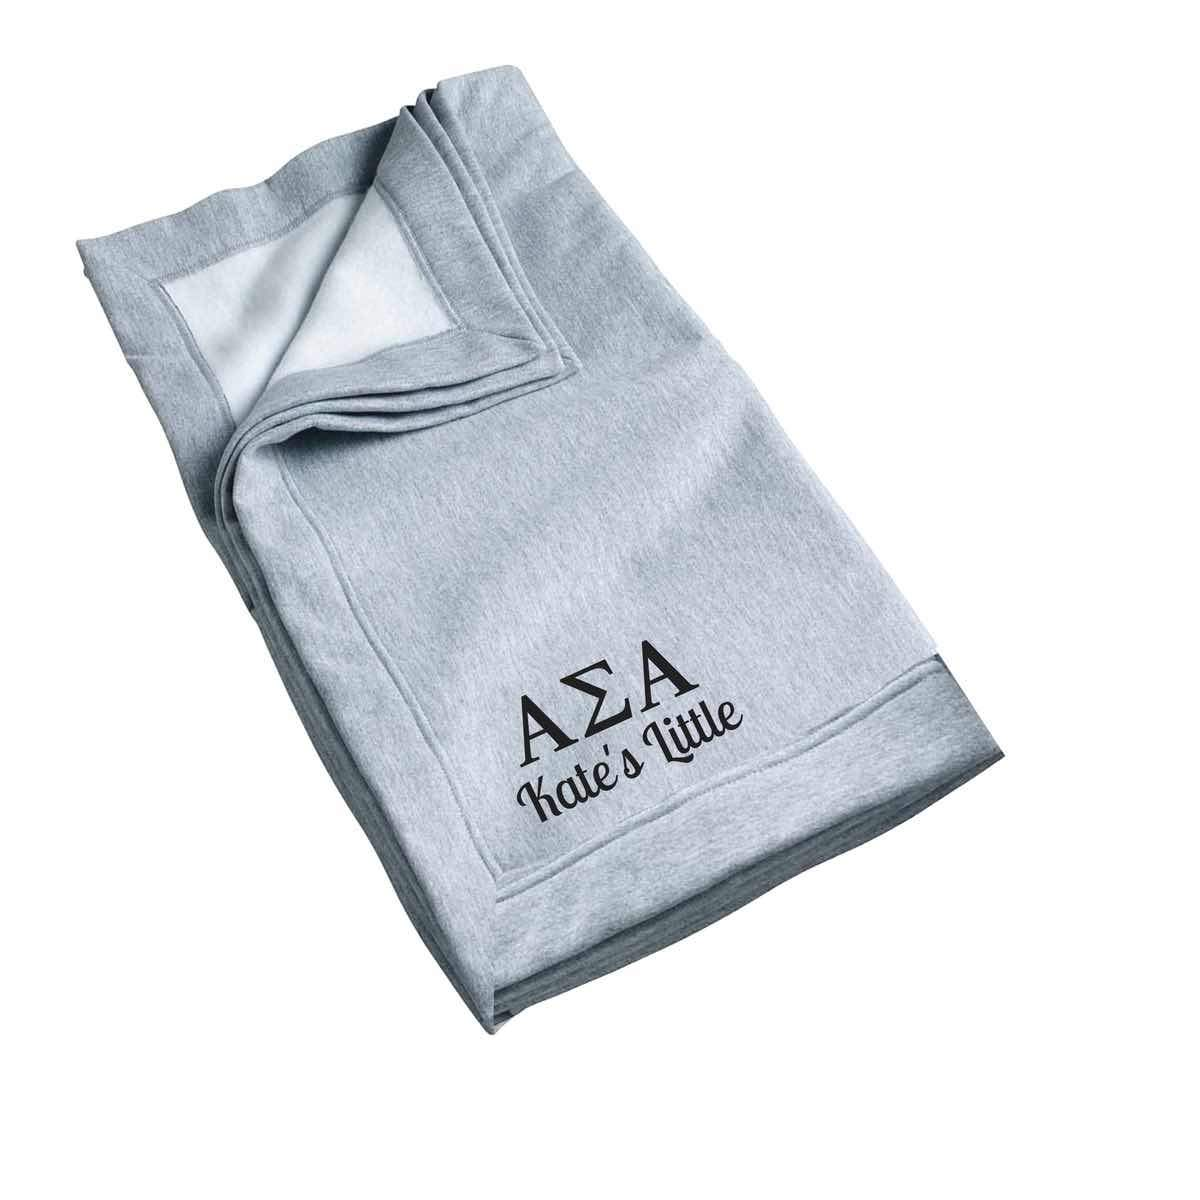 Alpha Sigma Alpha Little Blanket, Recommended One Size Fits All Personalized Big Little Gift